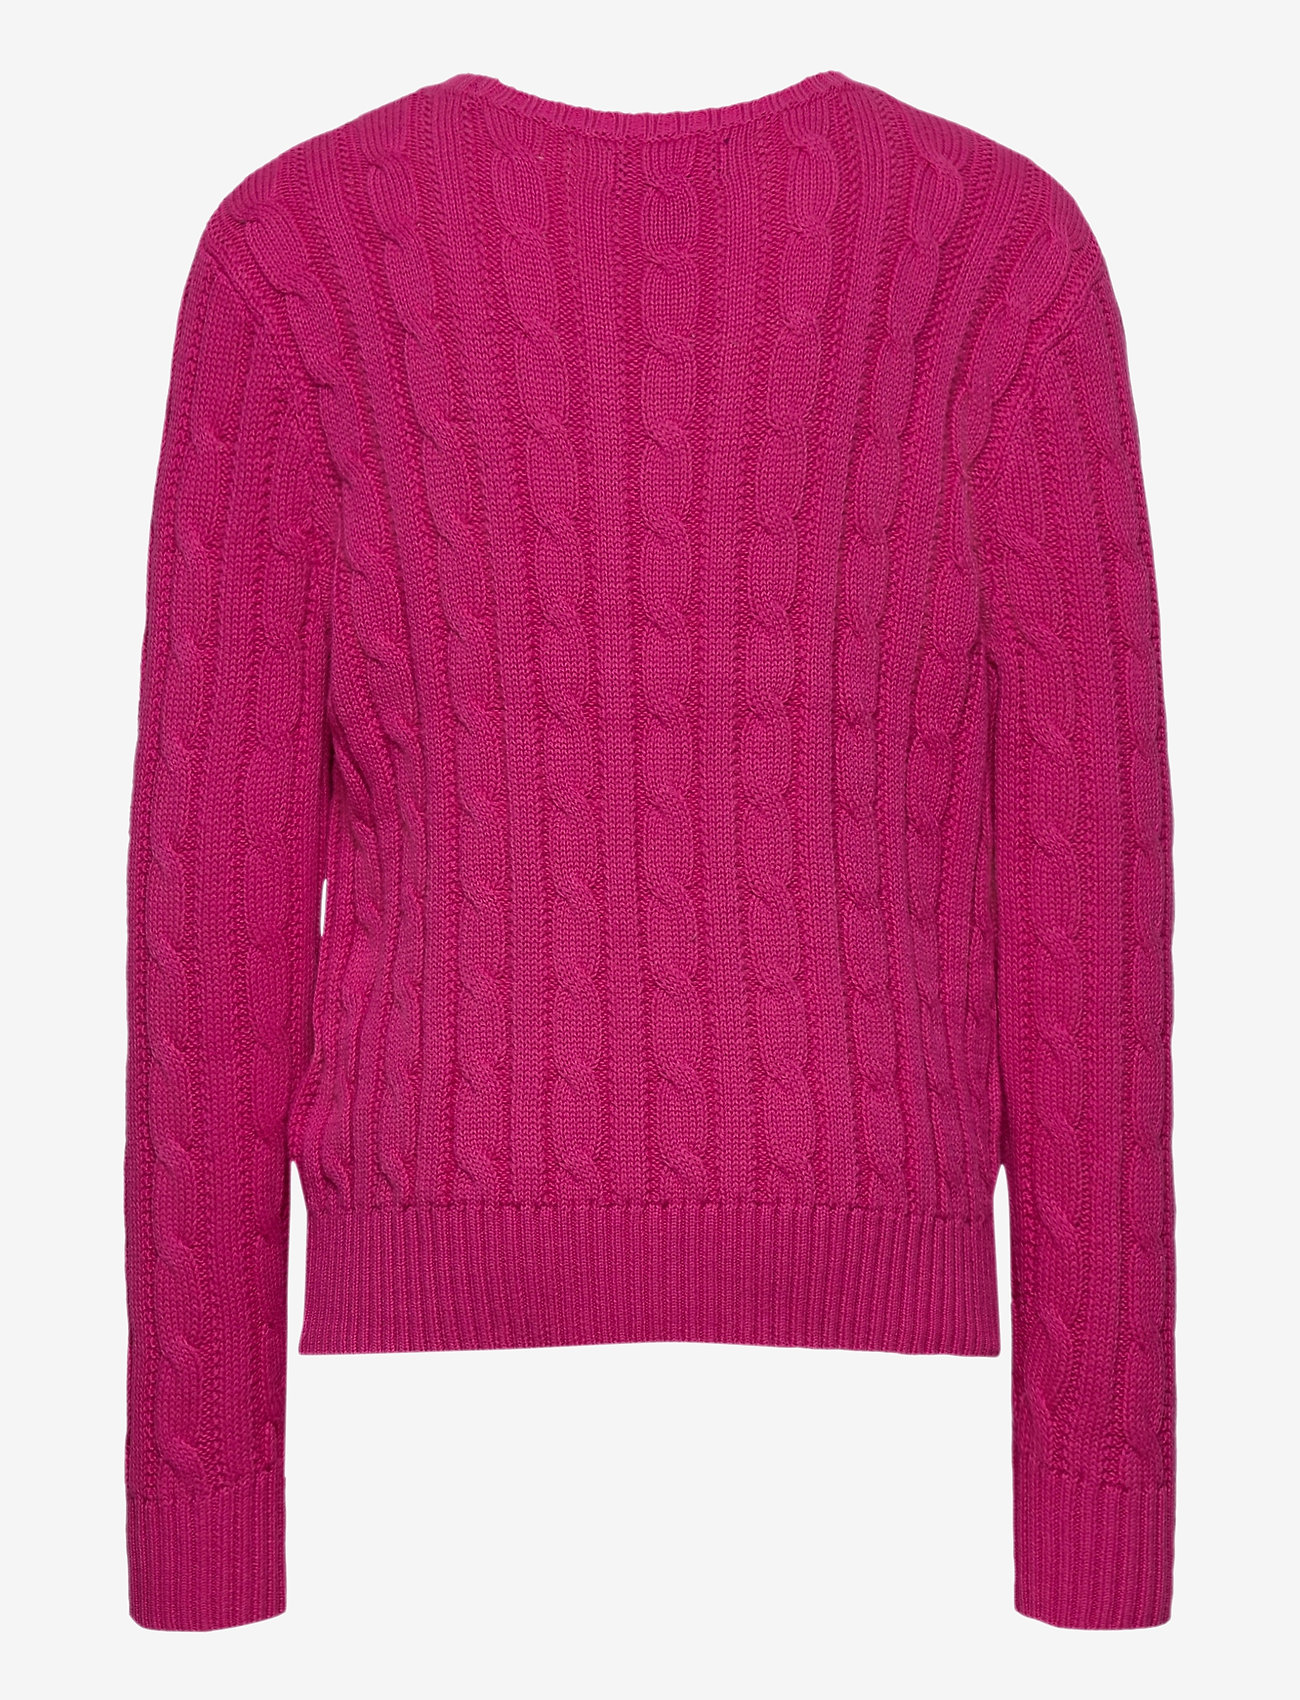 Ralph Lauren Kids - COTTON-CABLE CN-TP-SWT - knitwear - college pink/rl n - 1